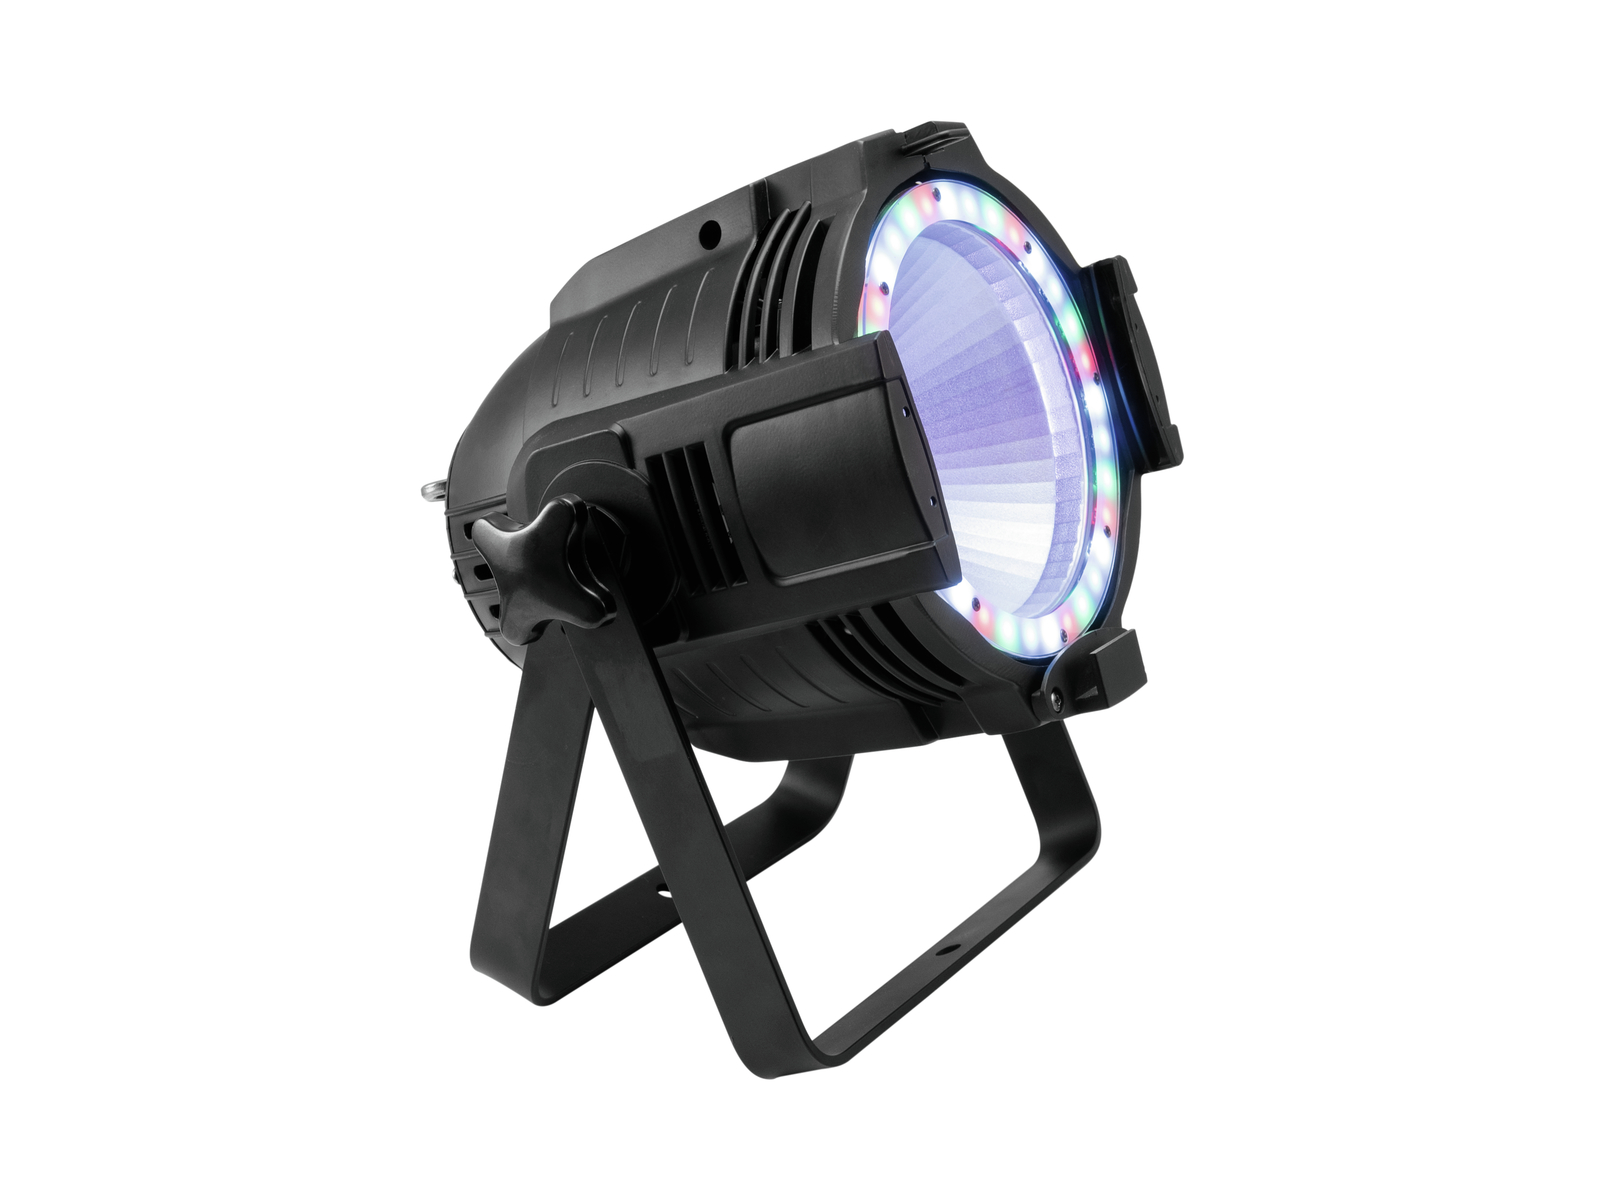 EUROLITE LED ML-56 COB RGBAWUV Hypno Piano bk